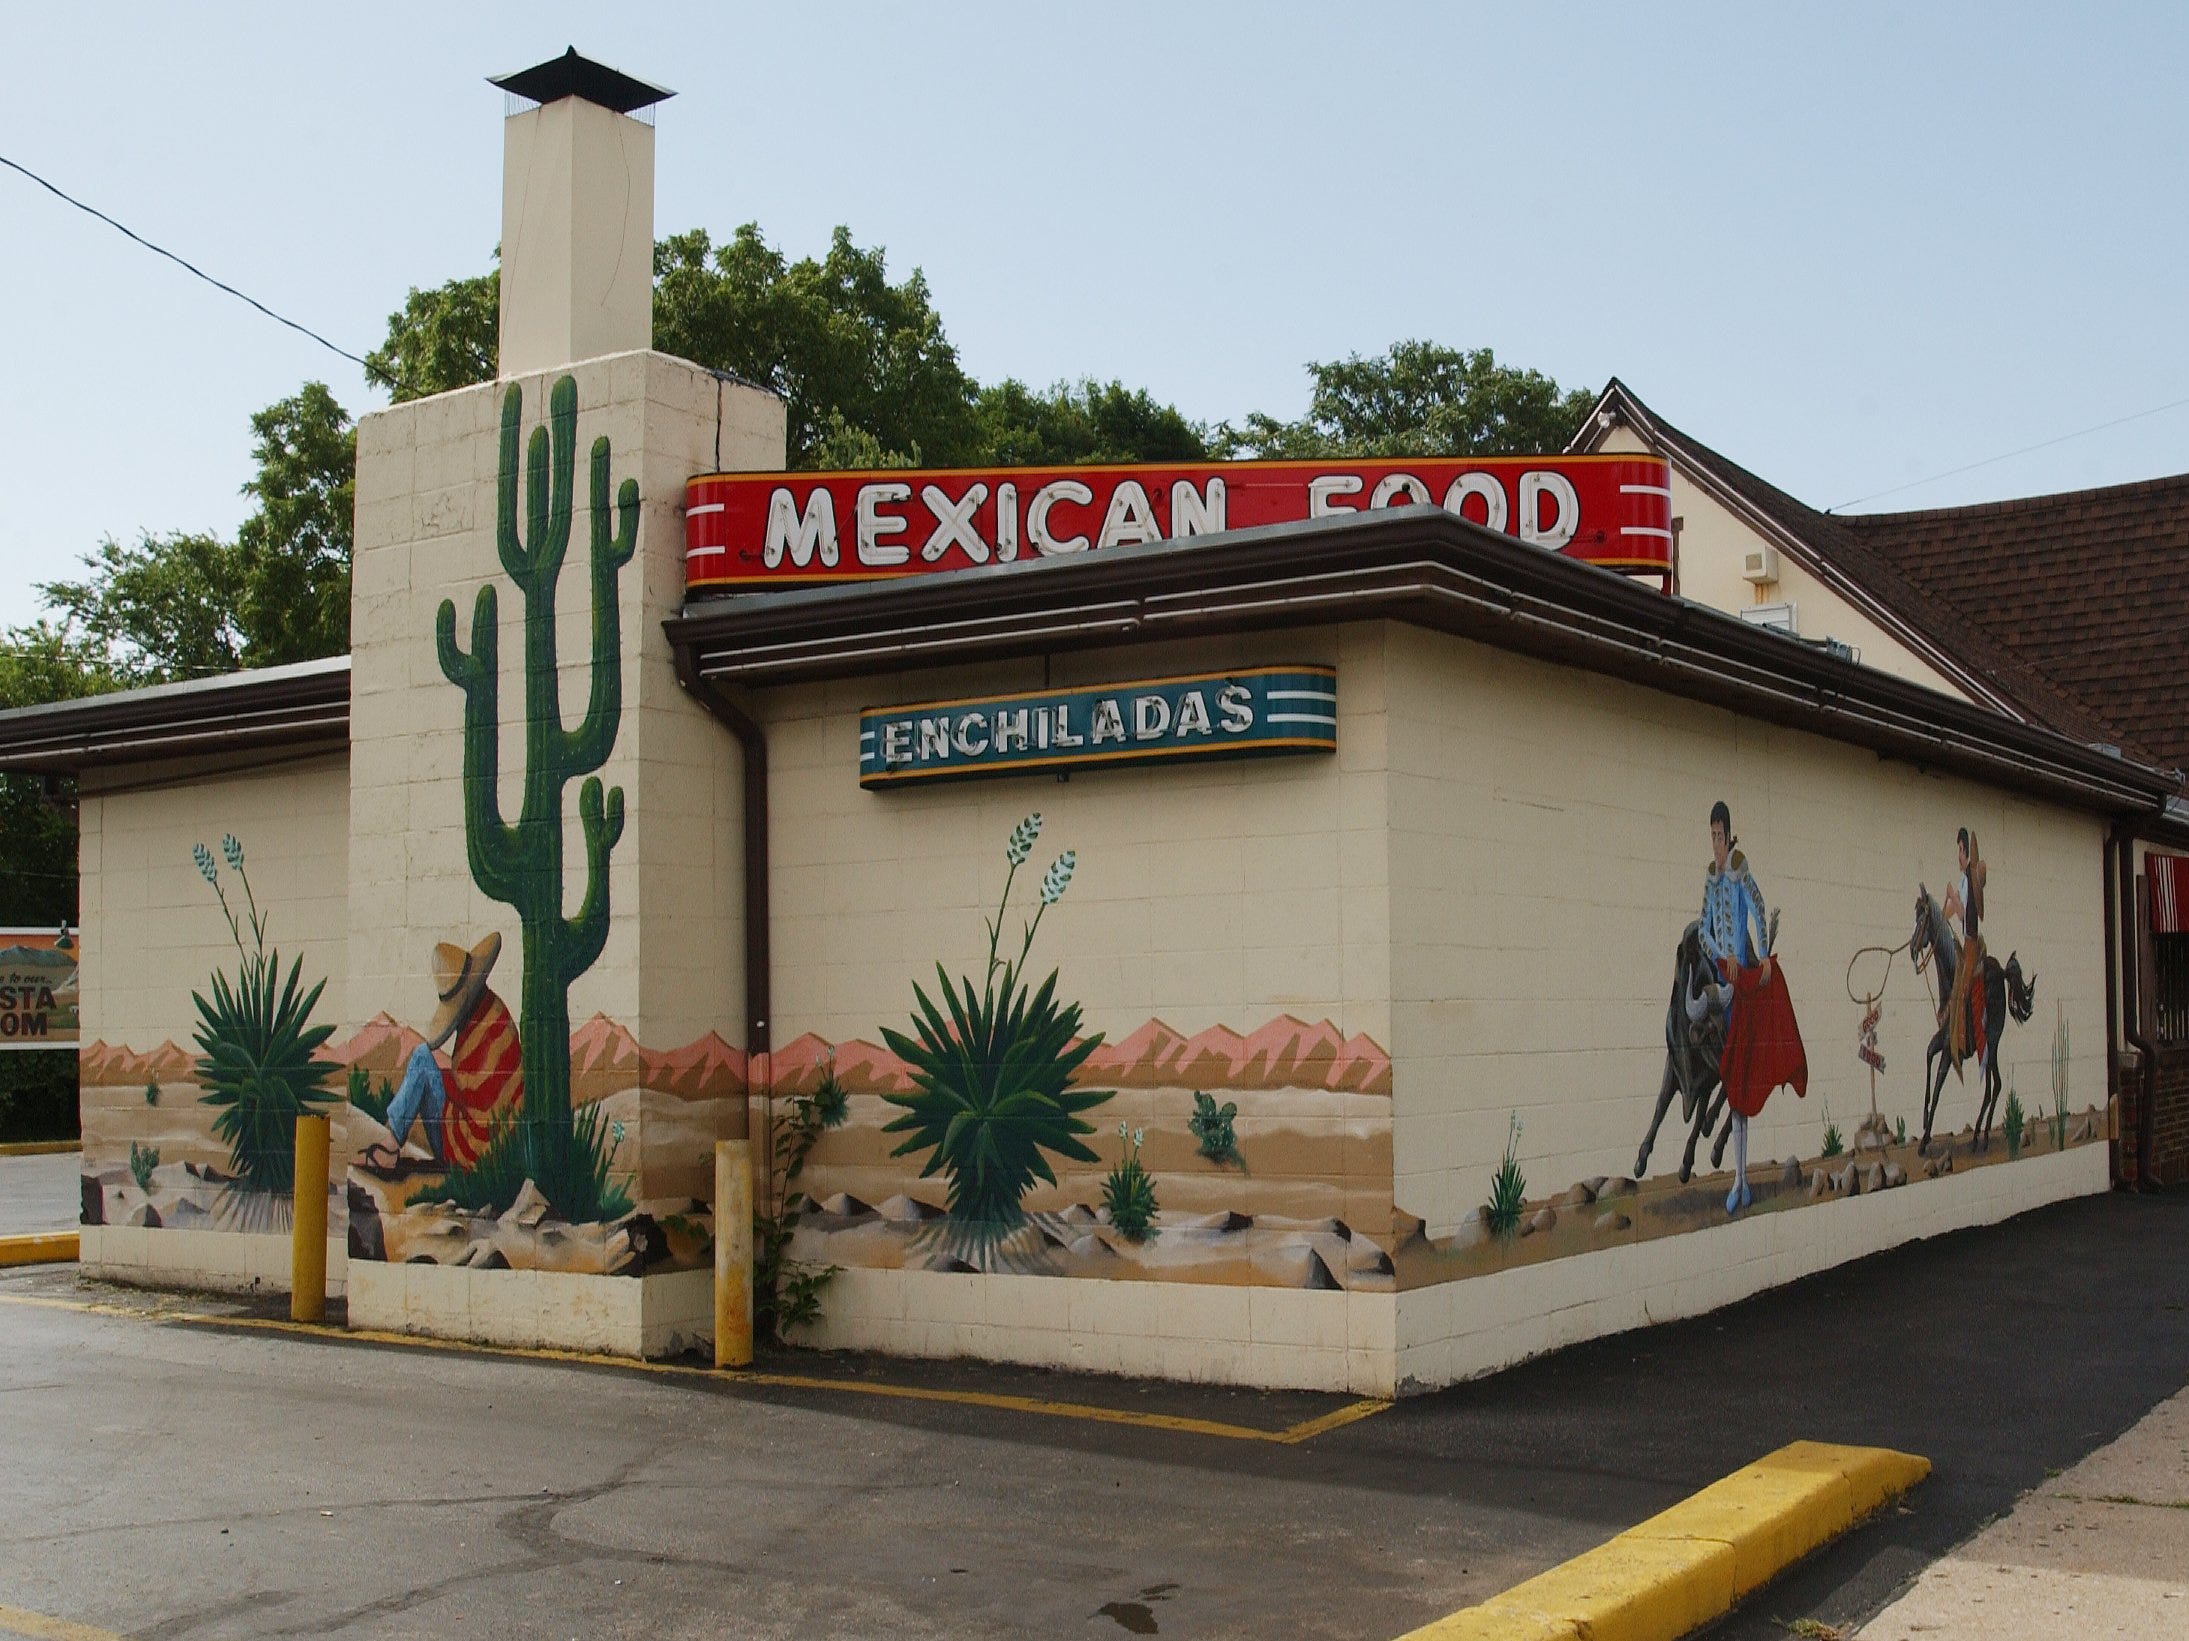 Mexican Villa got its start in 1951 by selling Mexican food out of a barbecue restaurant located where the South National restaurant is today. By 1956, owners Garin and Betty Ferguson opened a stand-alone restaurant named Old Mexico on Glenstone Avenue, approximately where Jimm's Steakhouse is located today.